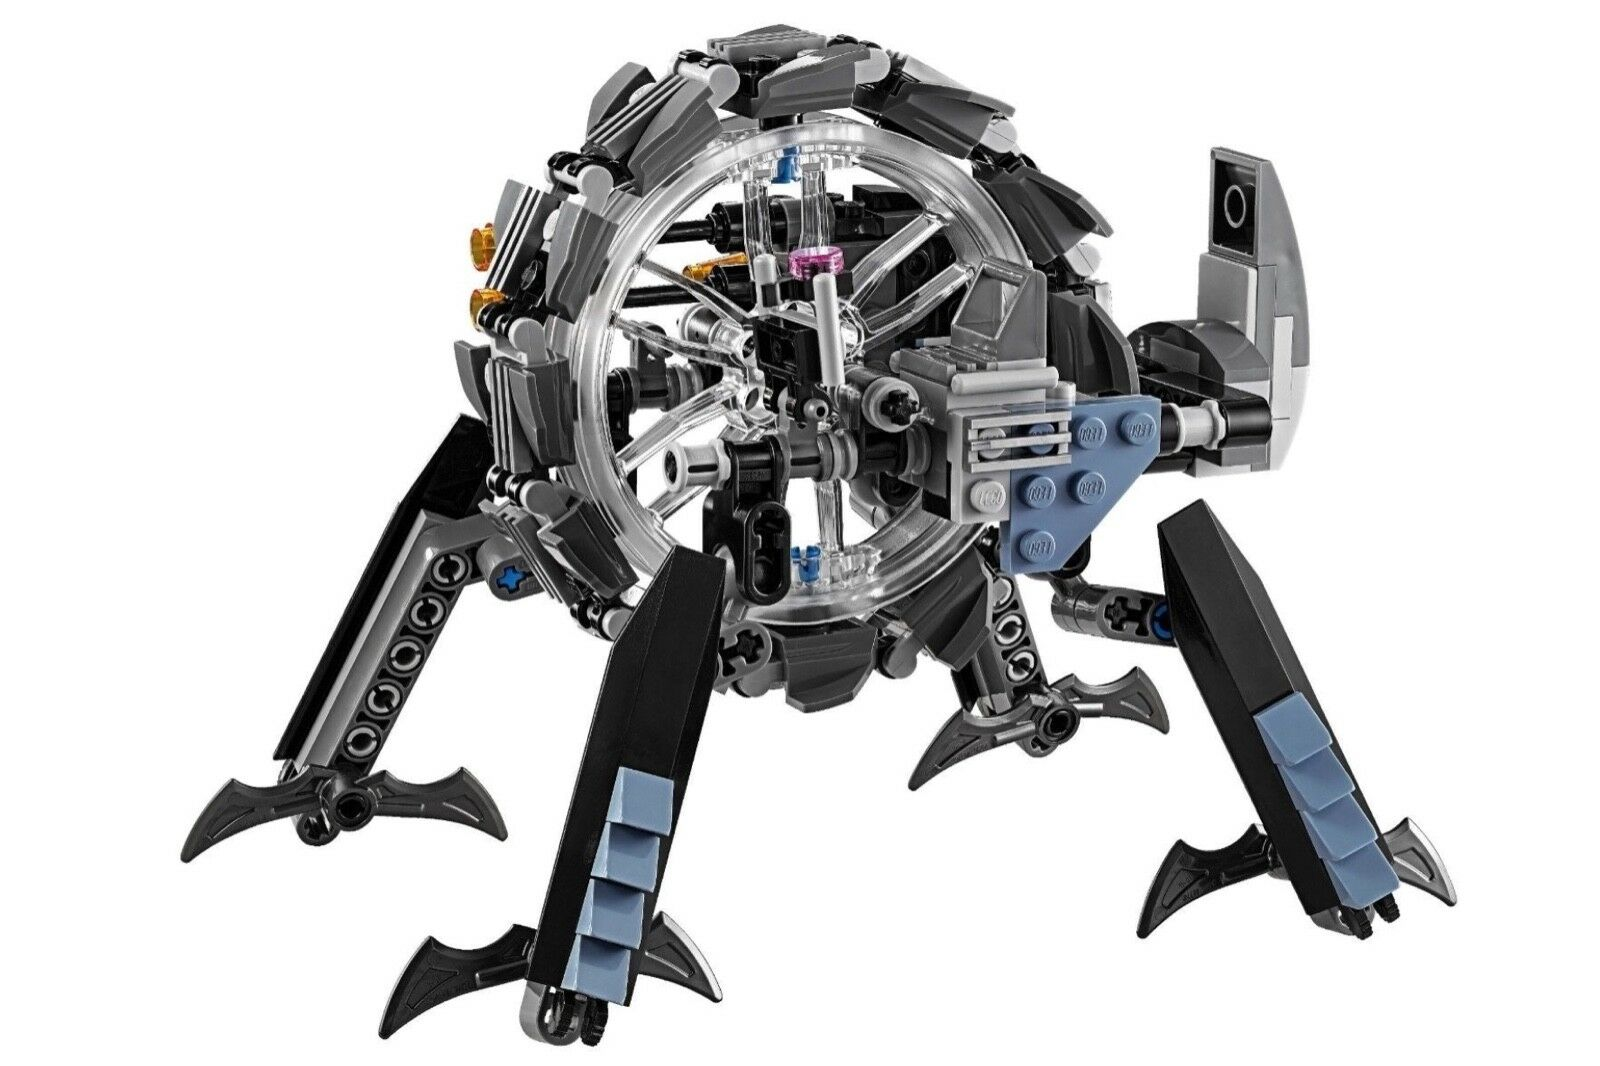 Star Wars Lego GENERAL GRIEVOUS WHEEL BIKE from set 75040 NO MINIFIGURES OR BOX